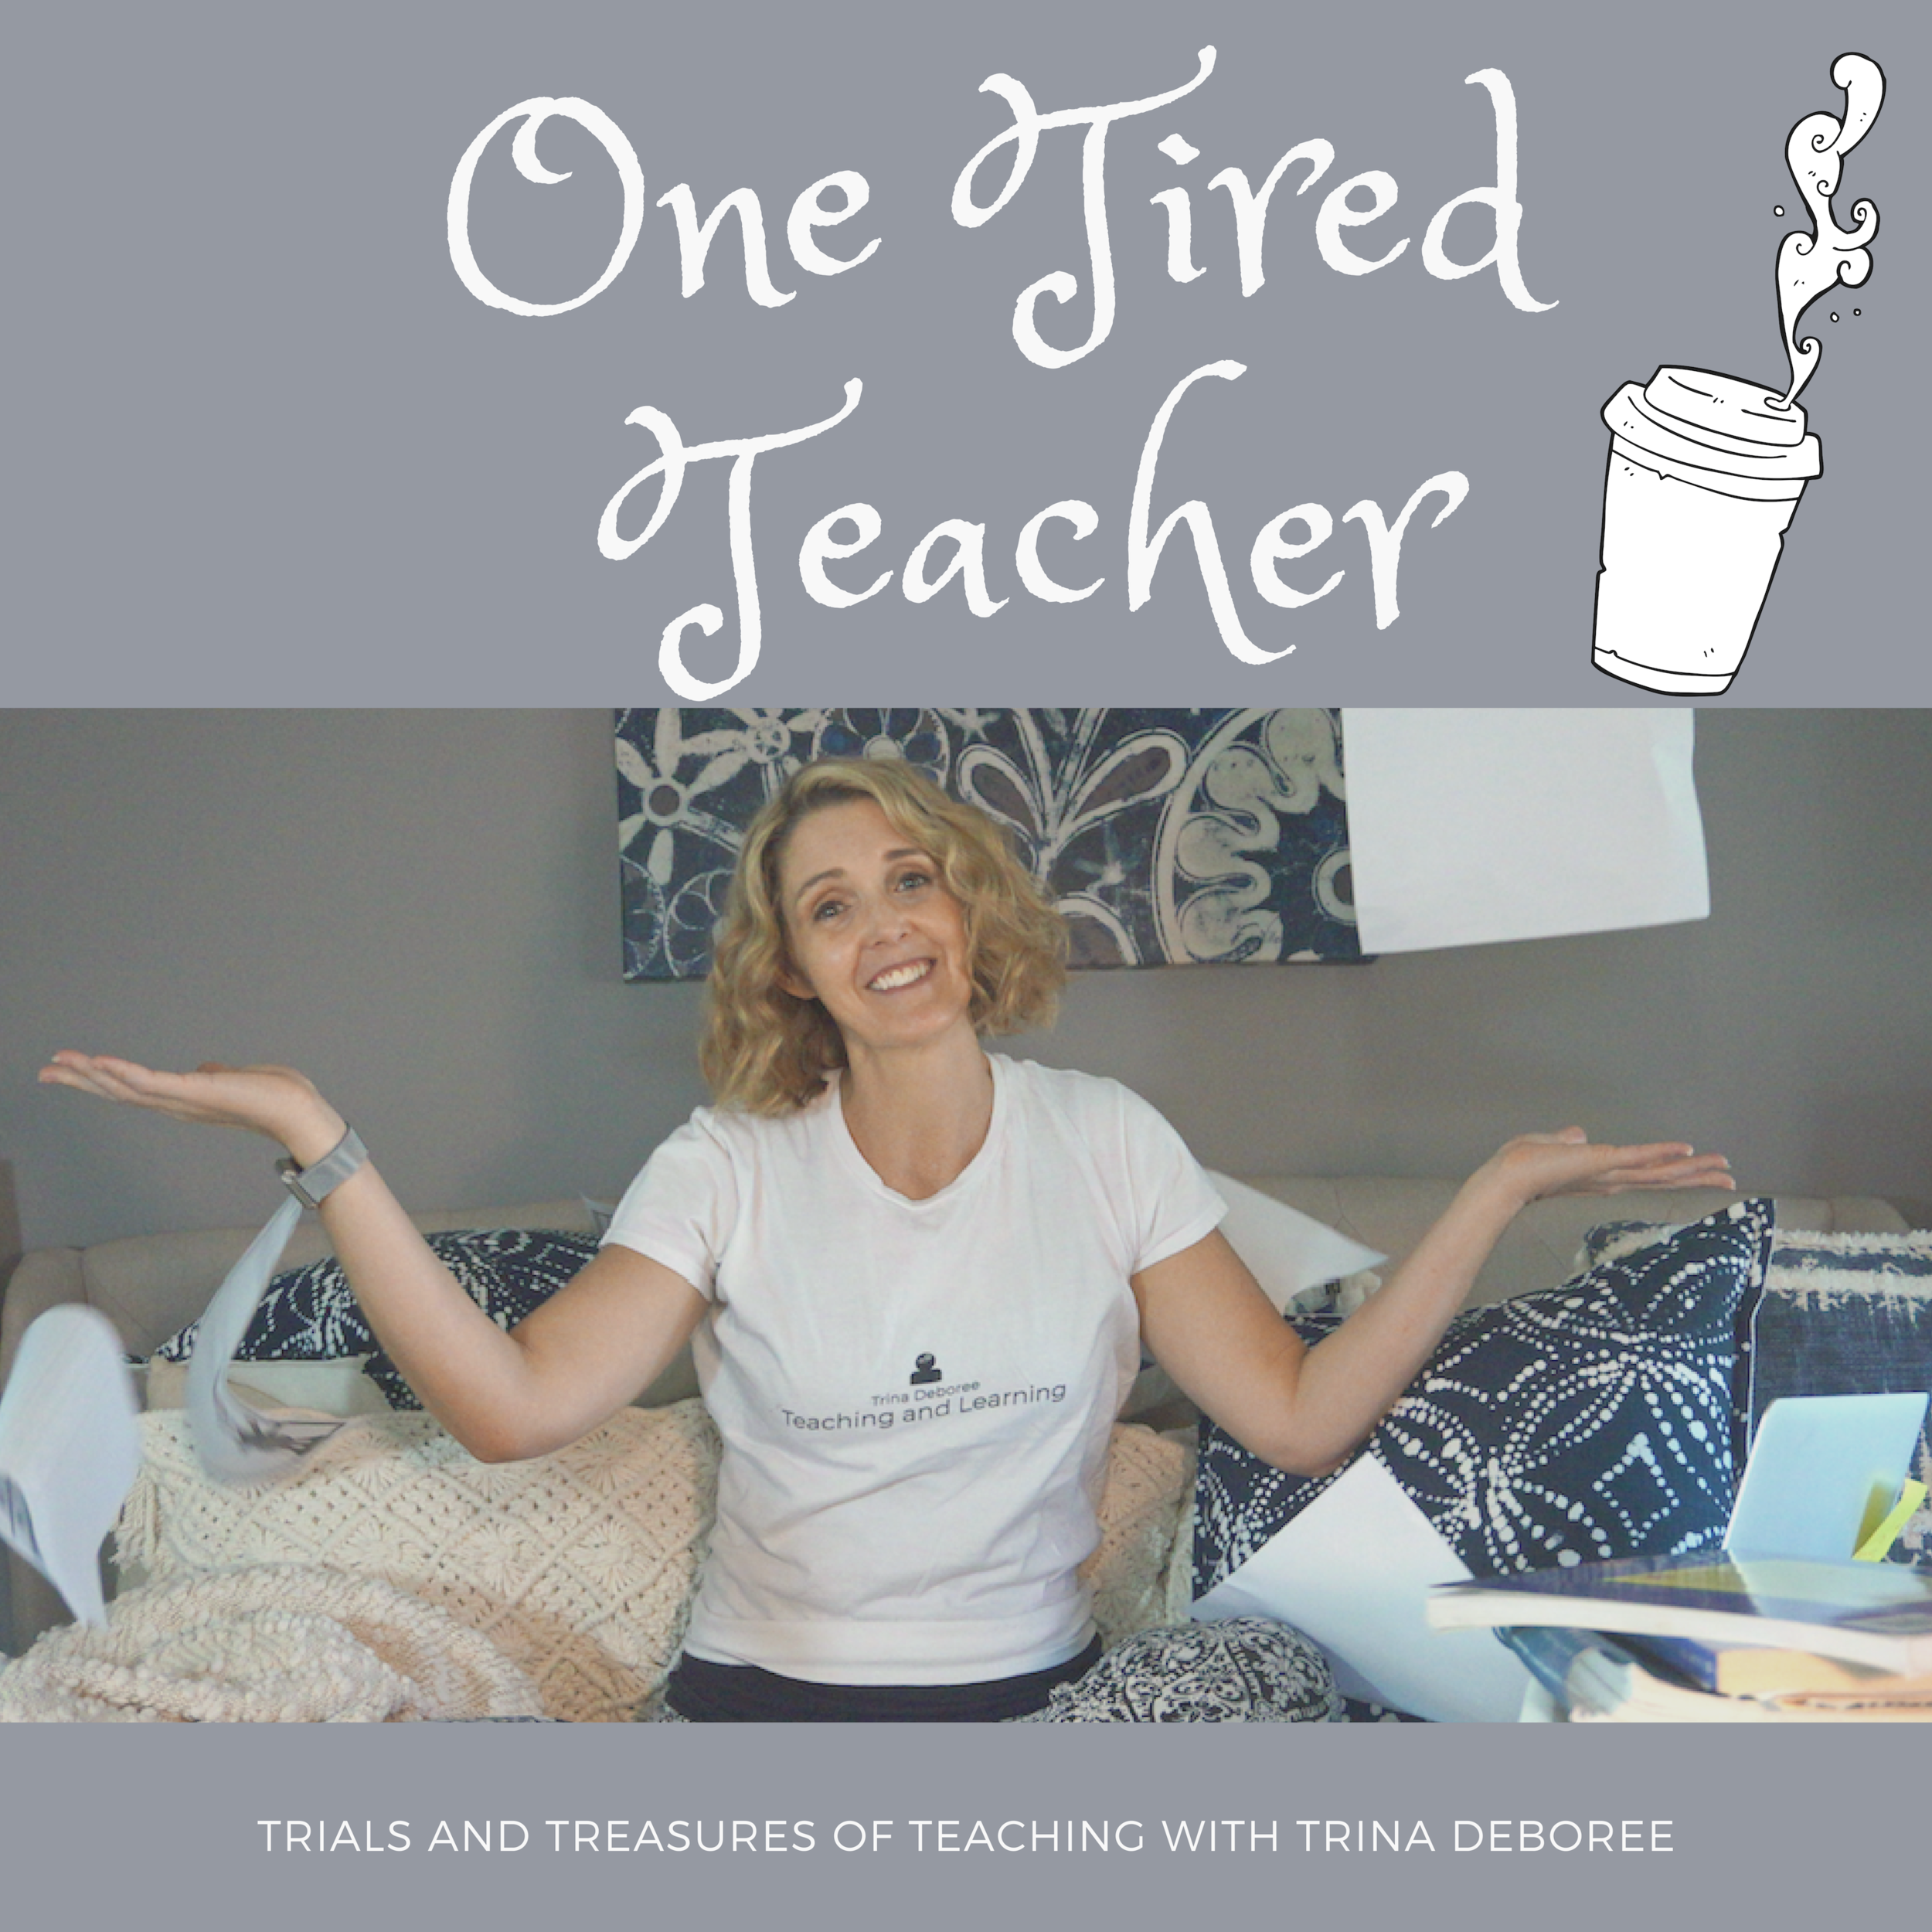 One Tired Teaching